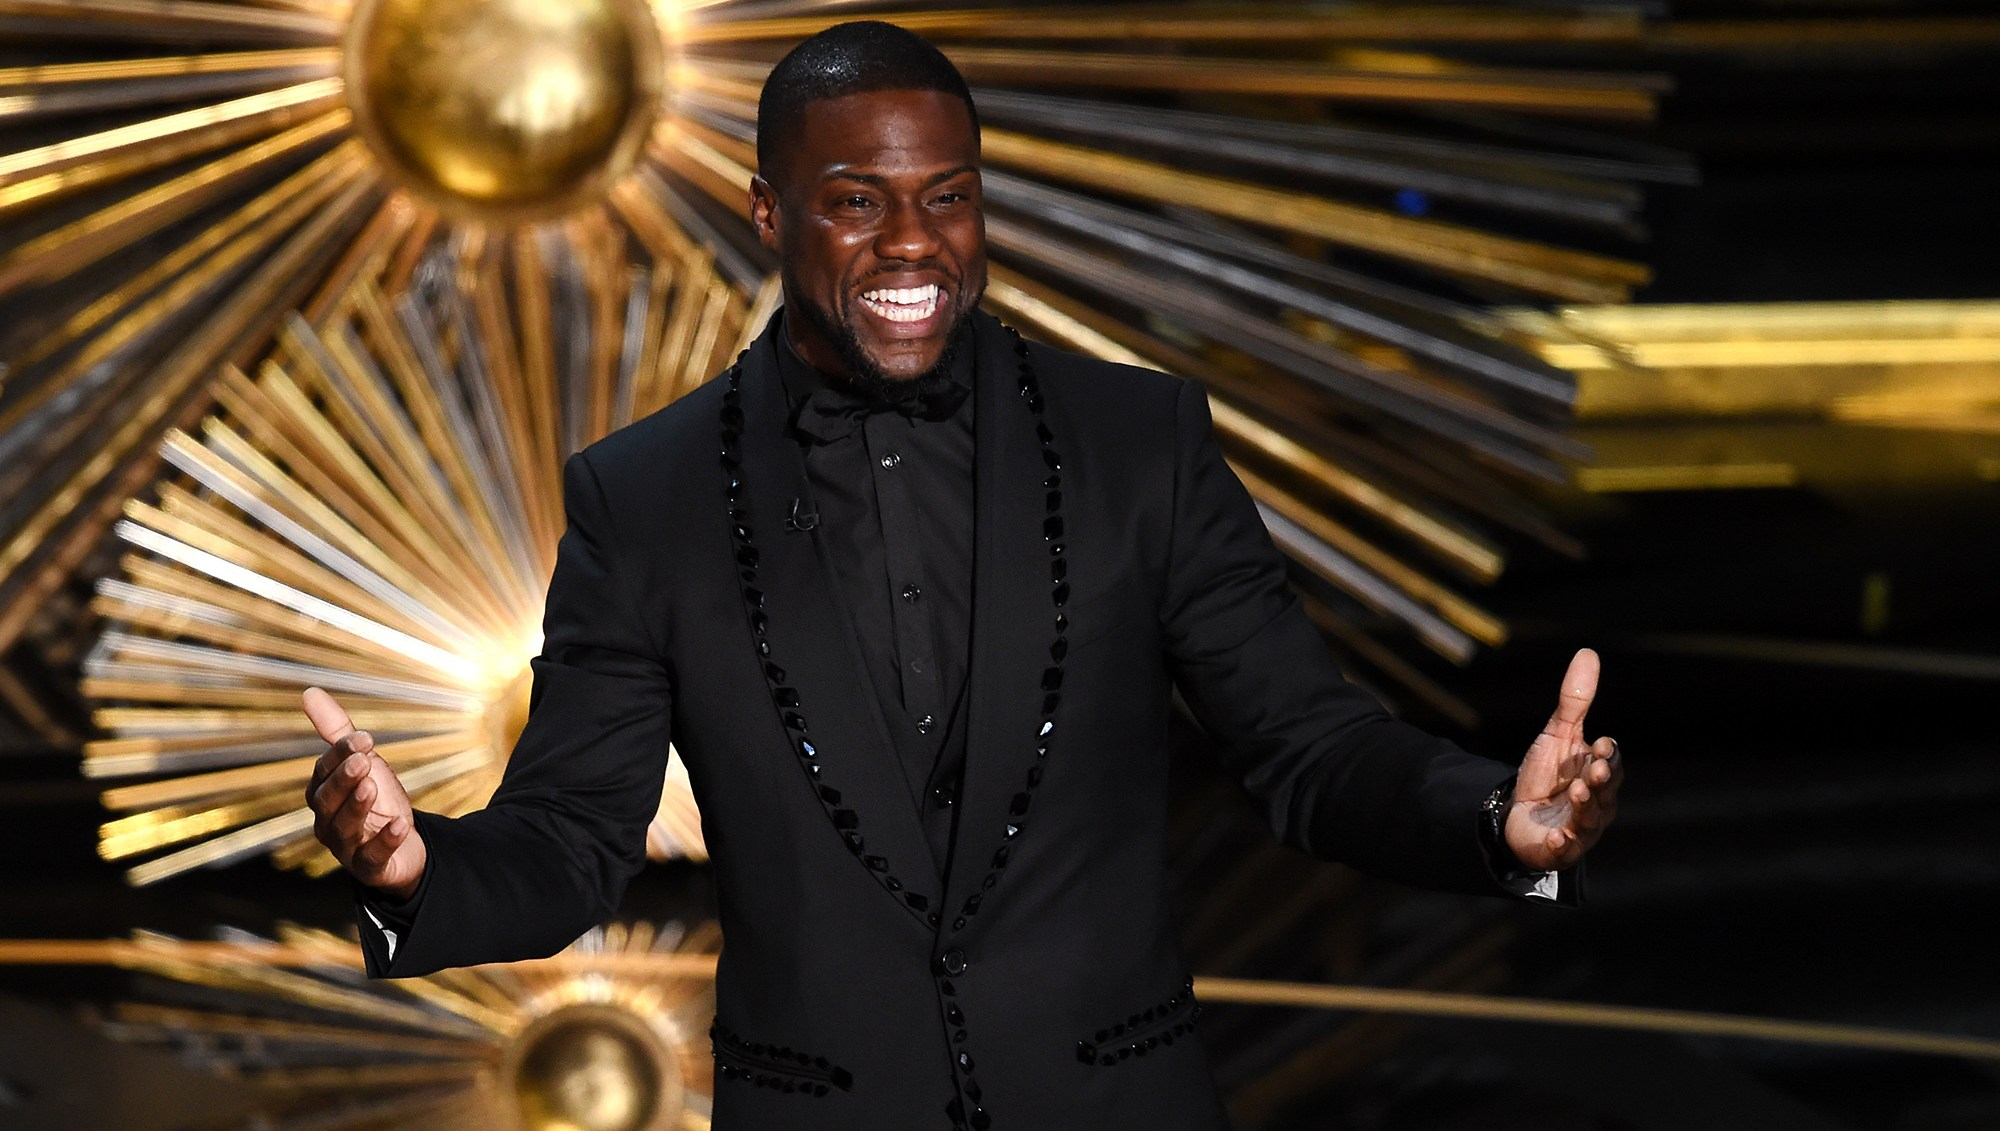 Kevin Hart Returns as Academy Awards 2019 Host After Stepping Down